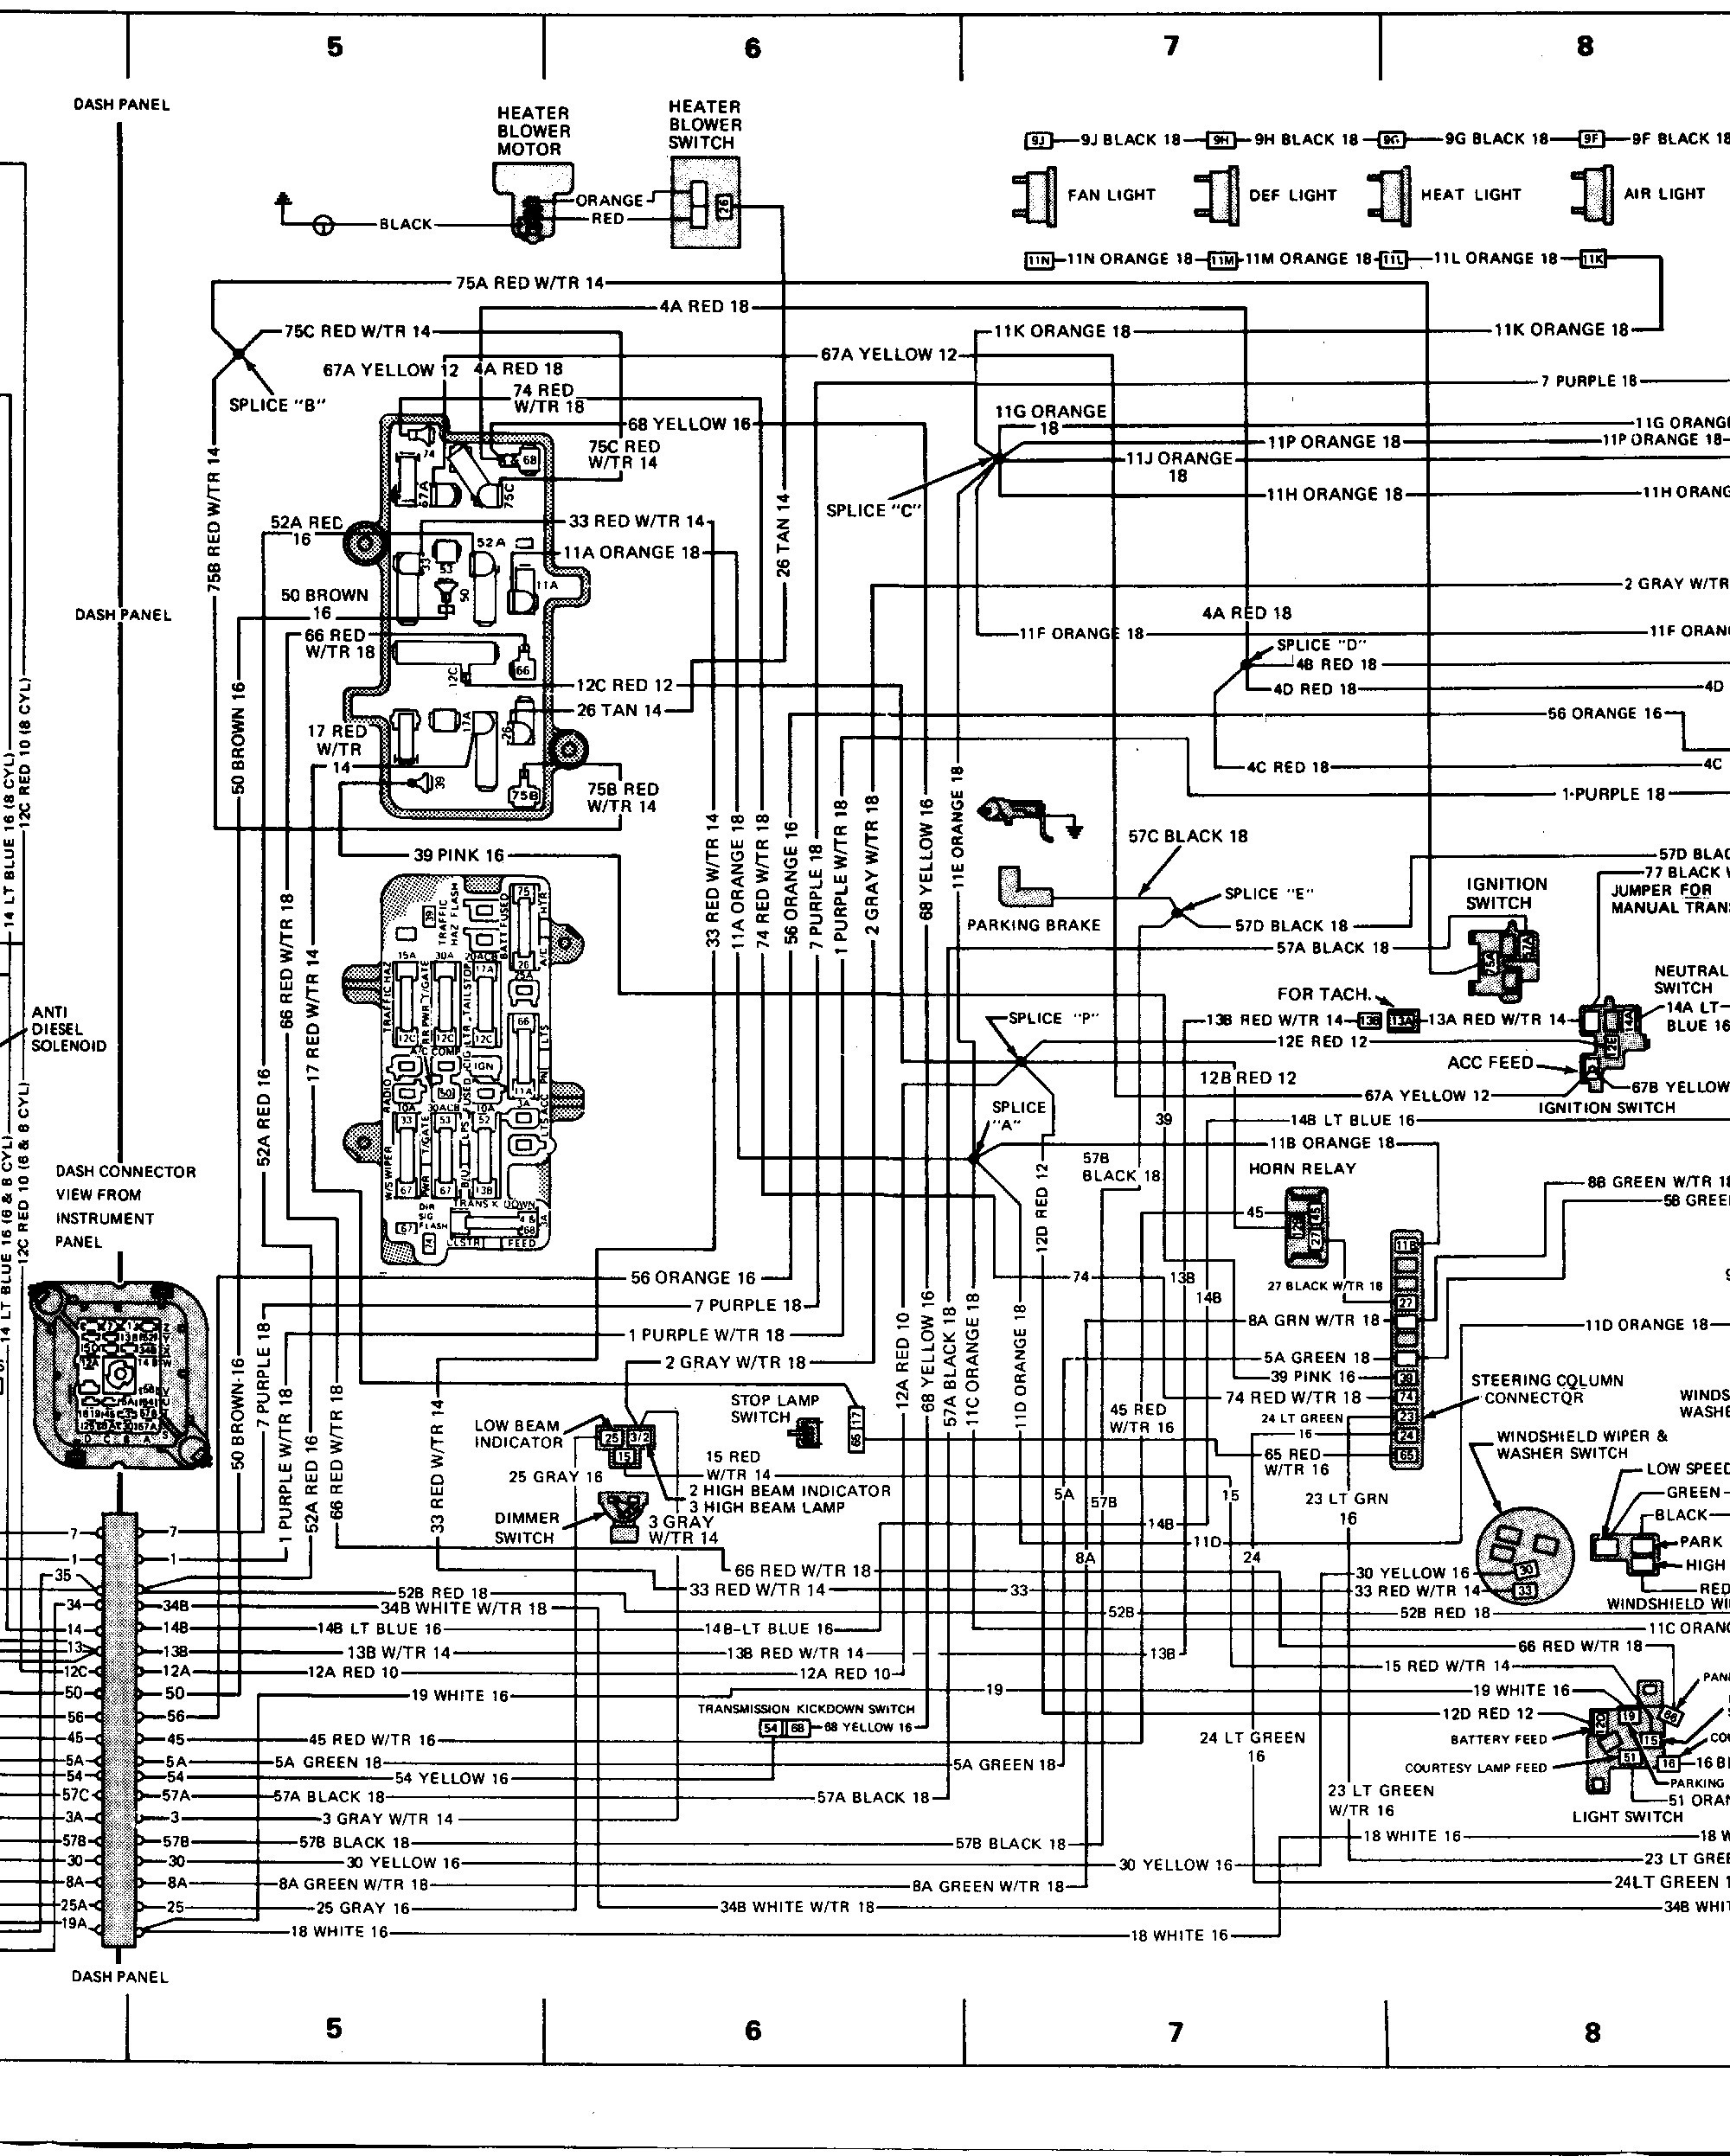 Amc 304 Engine Diagram 350 Swap Jeep Cj7 Wiring Get Free Yj Also Cj 7 Besides 360 Of